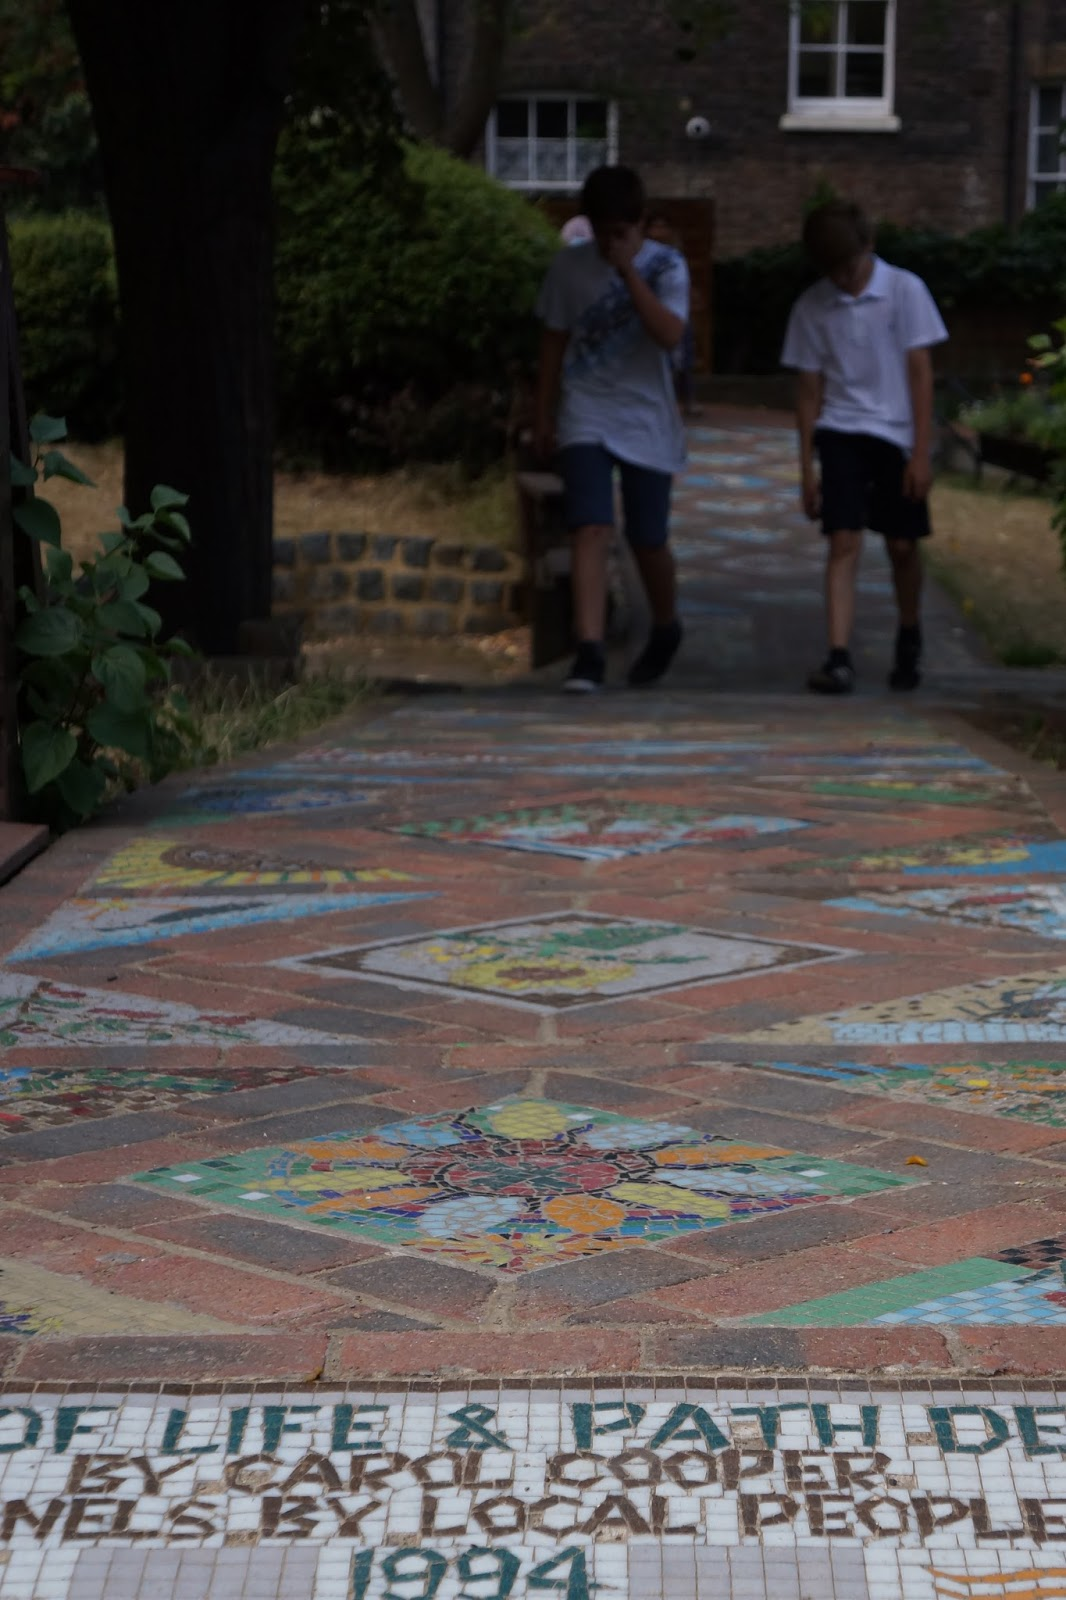 calthorpe project mosaic pavement road